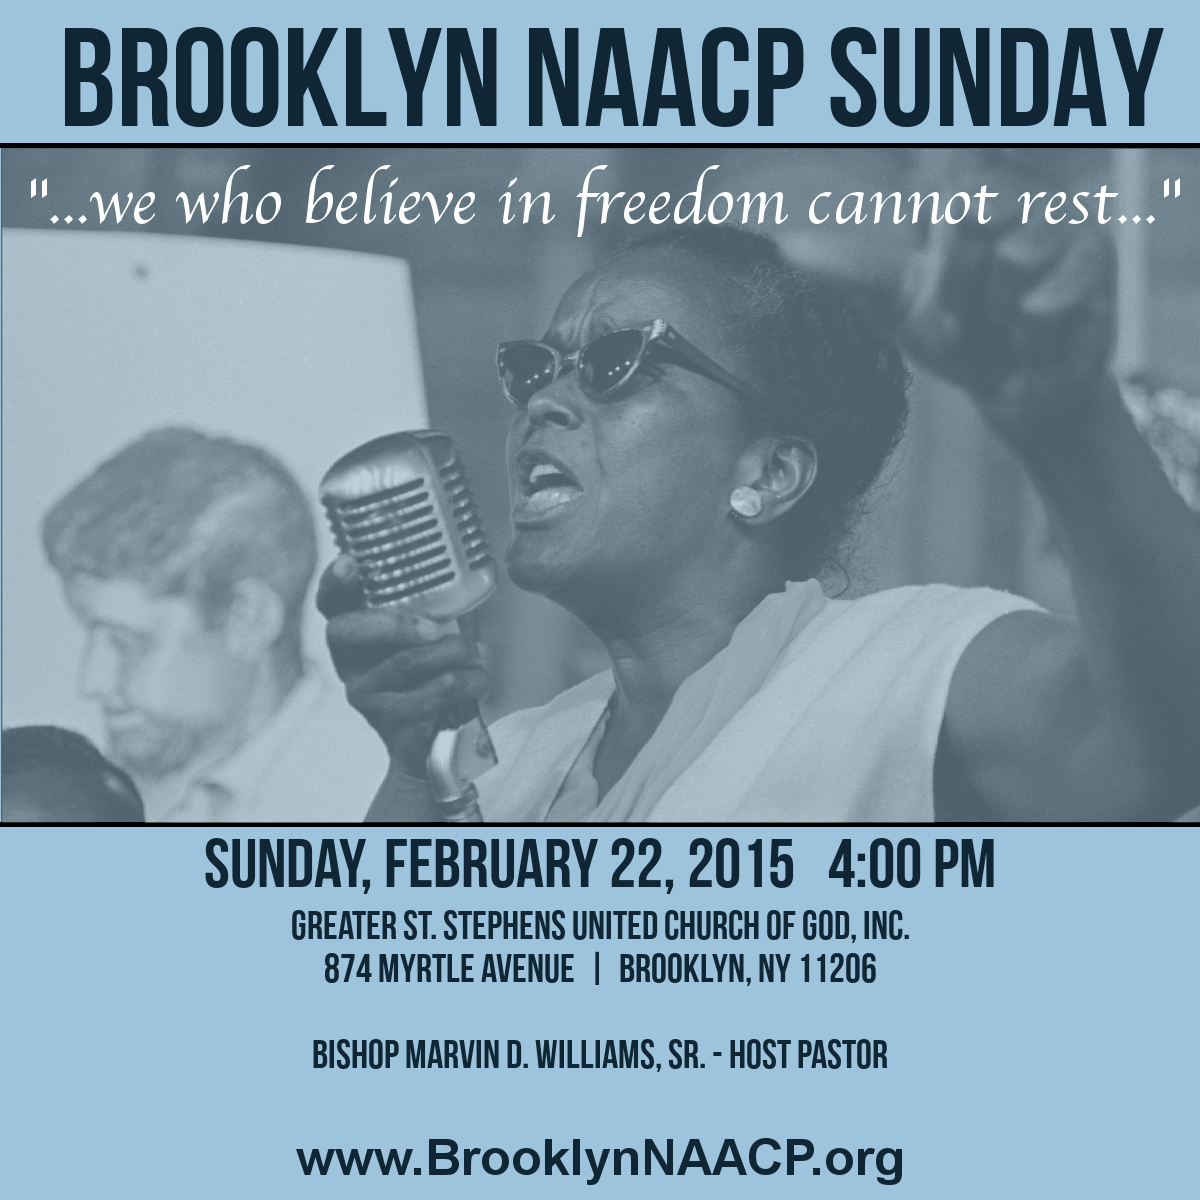 naacp_sunday2.png